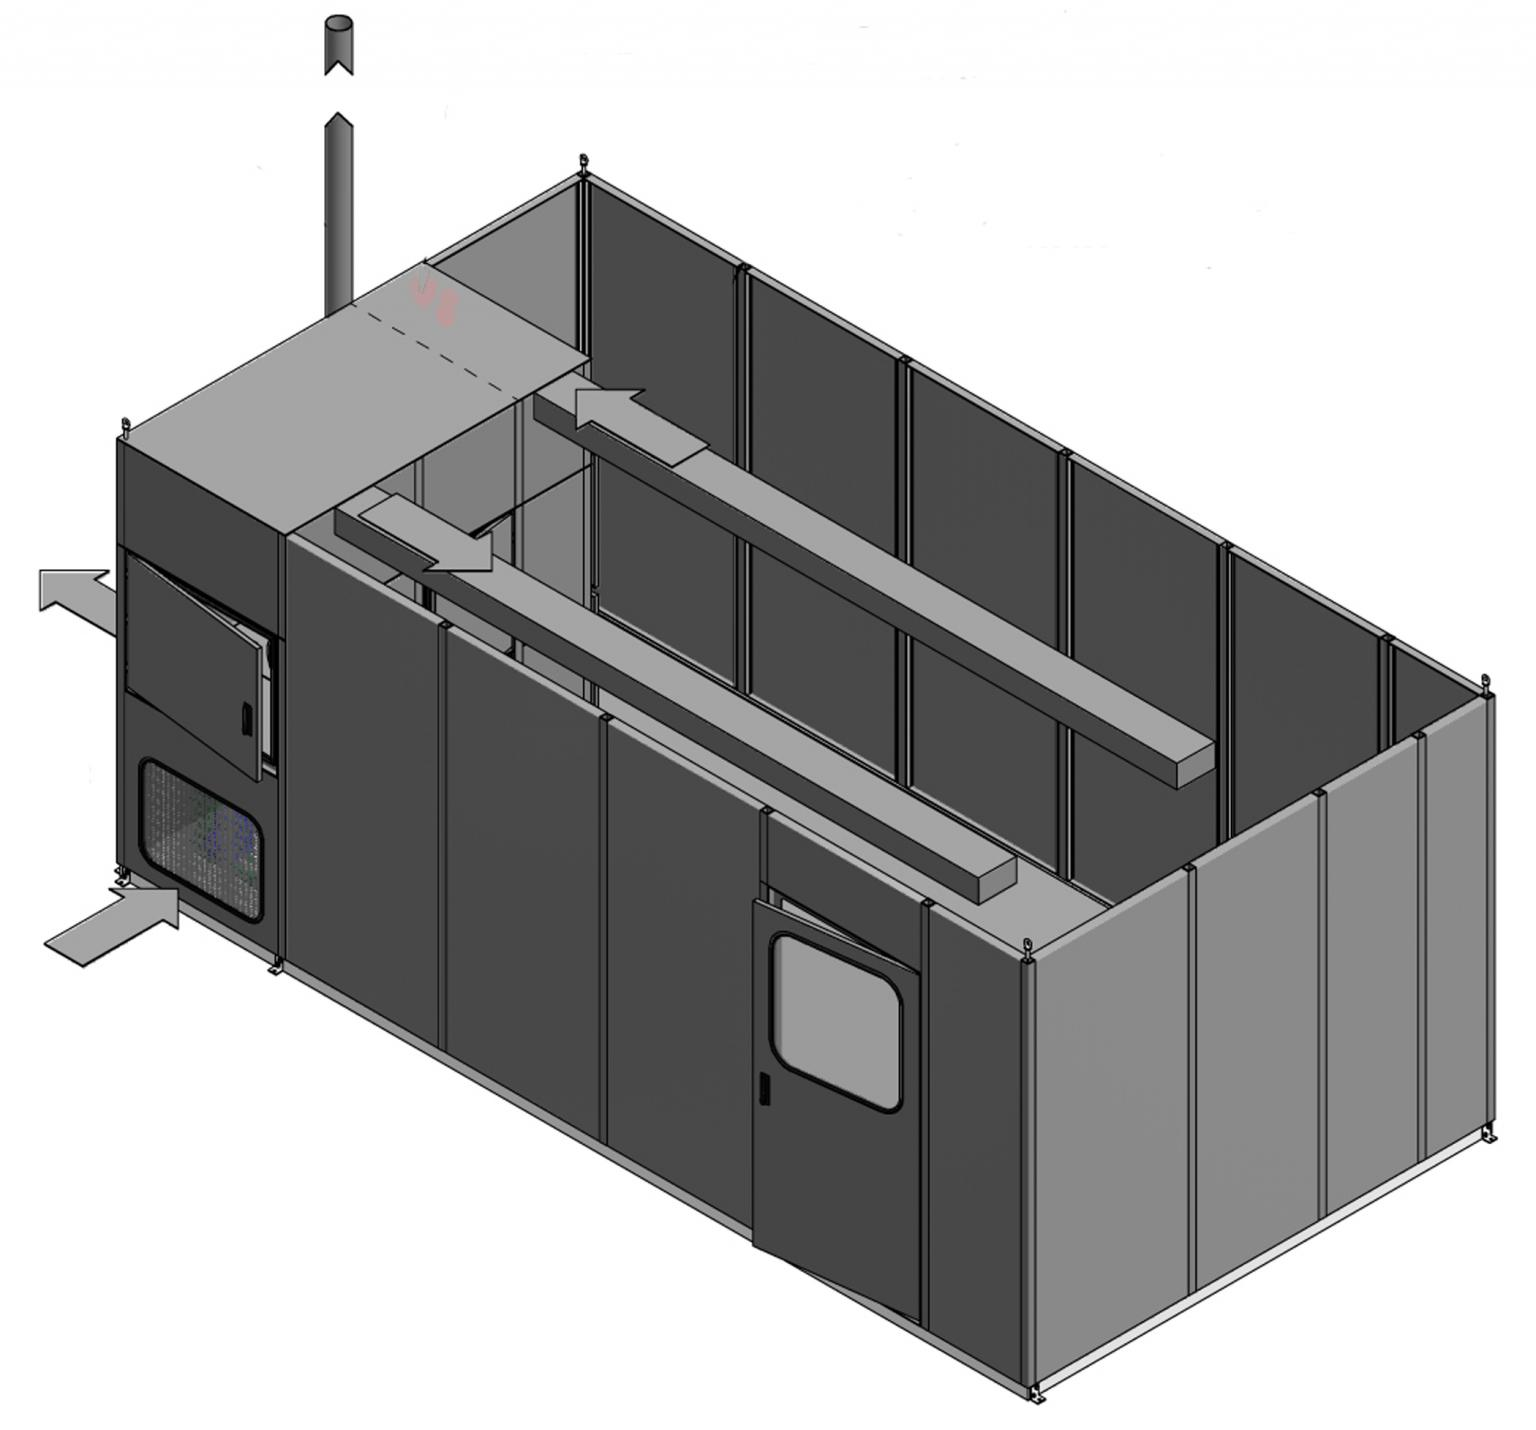 Intertec's new explosion-proof HVAC system can be fully integrated within an analyser shelter to save space, cost and energy, paving the way for a new generation of high performance shelters